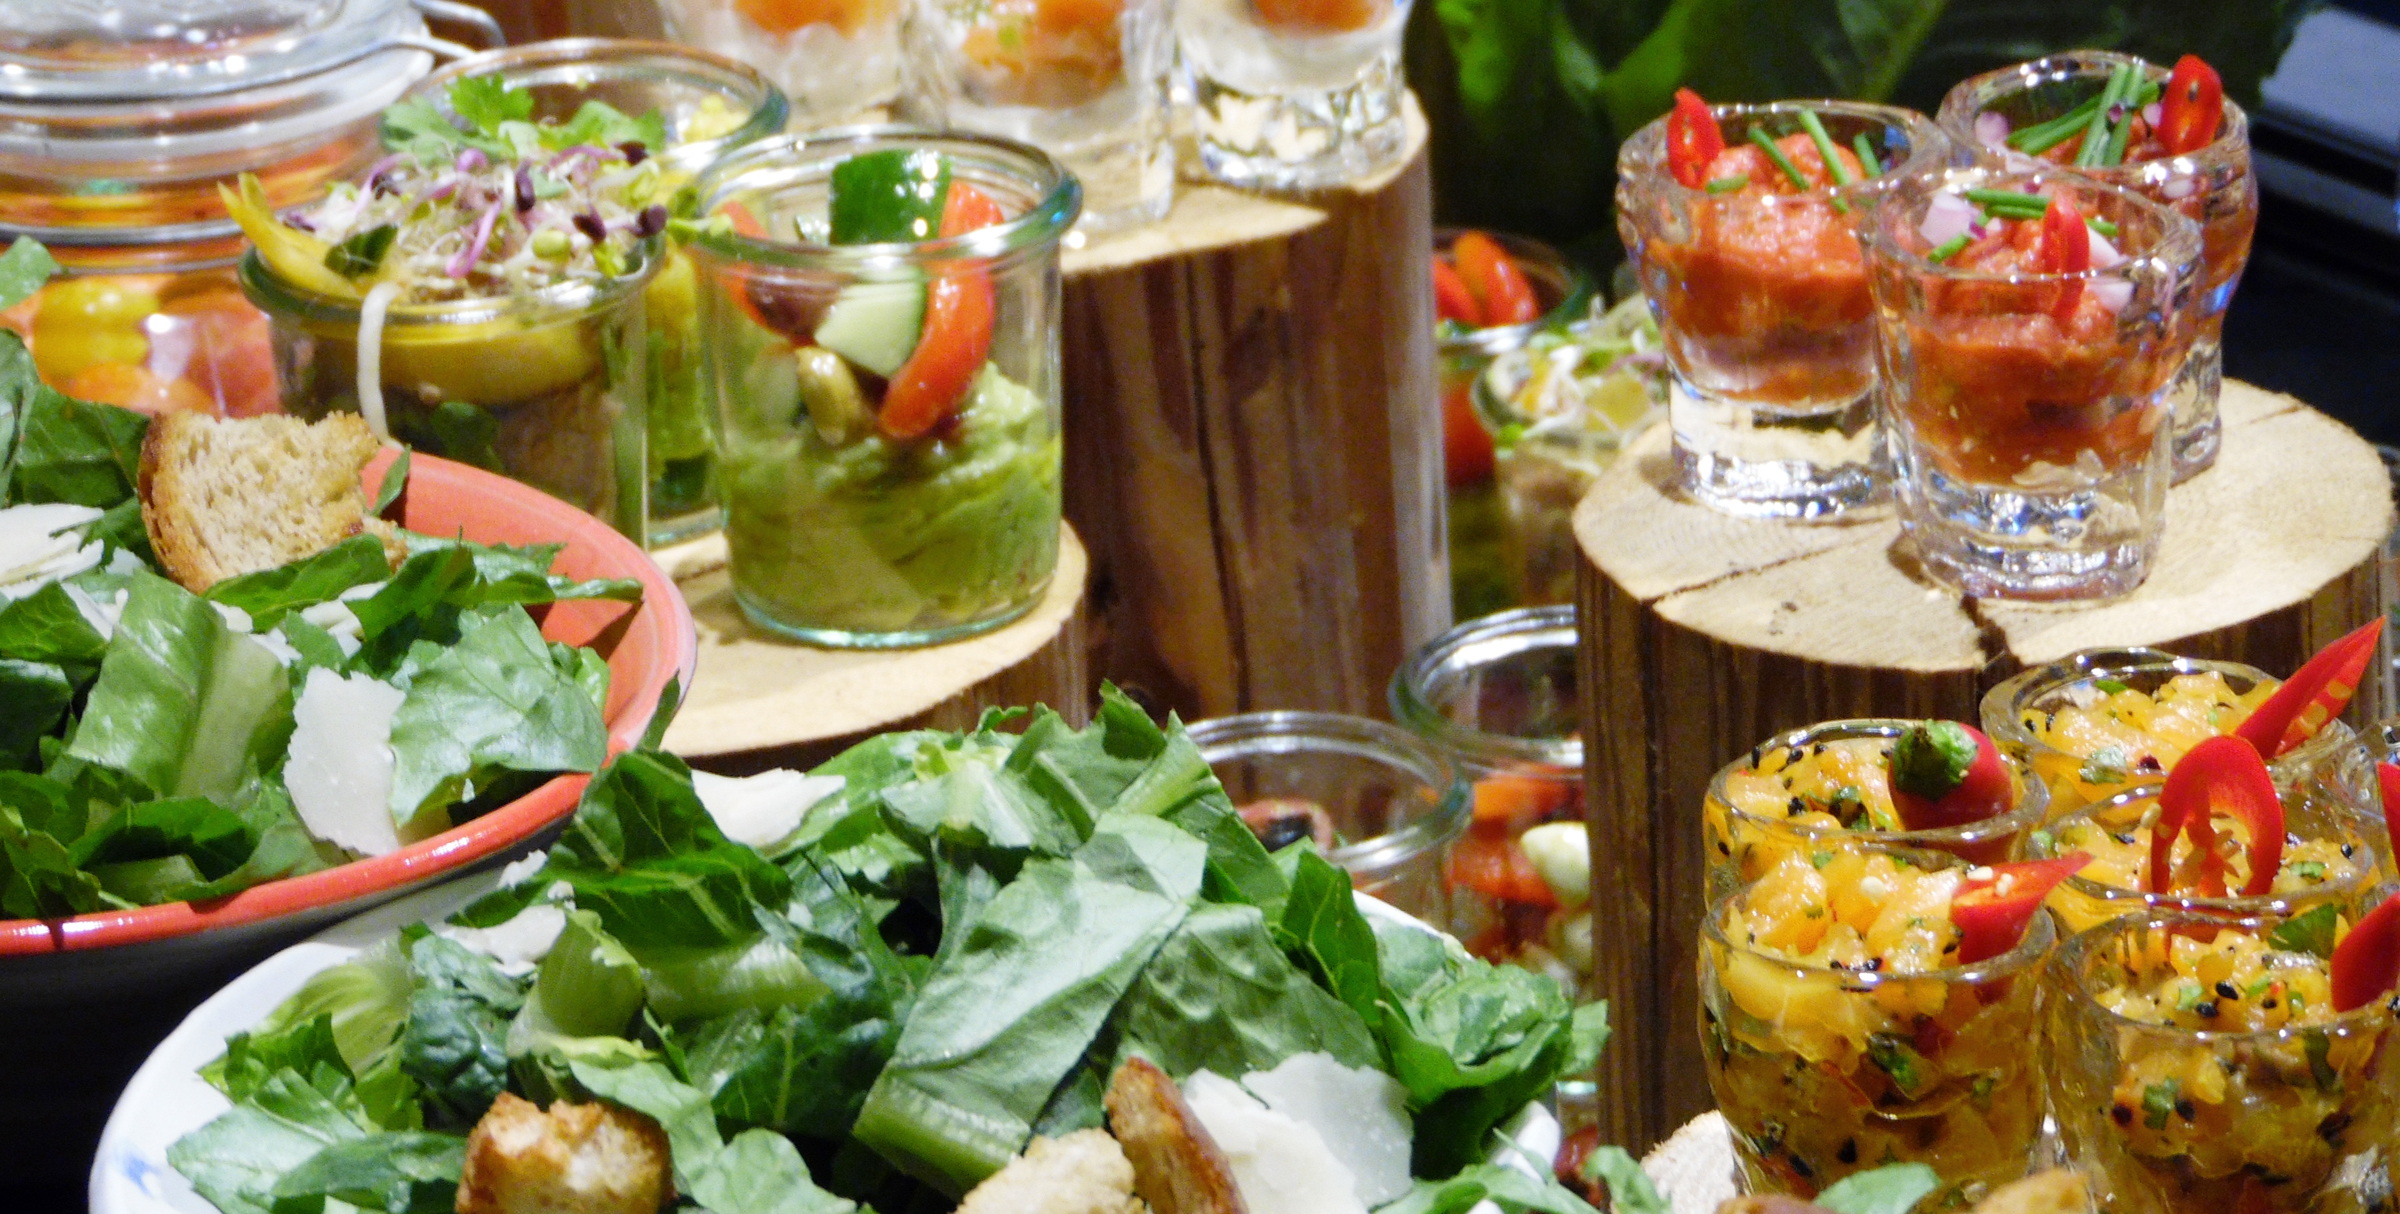 Marche Mövenpick | Catering for your event | Party catering | Marché ...